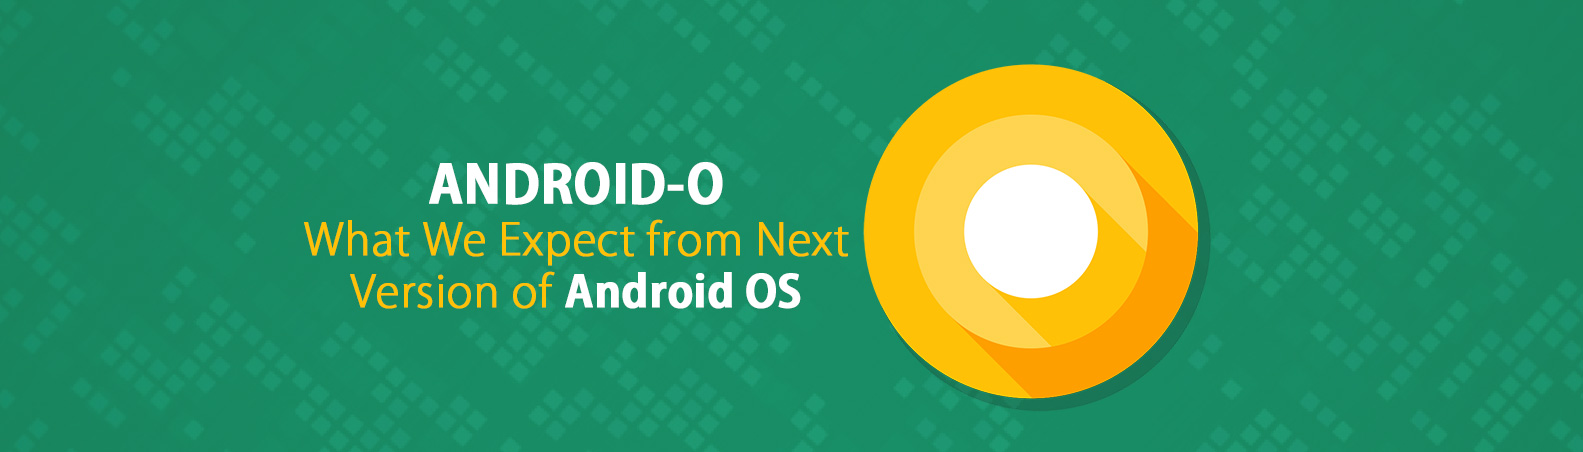 Android O: What We Expect from Next Version of Android OS